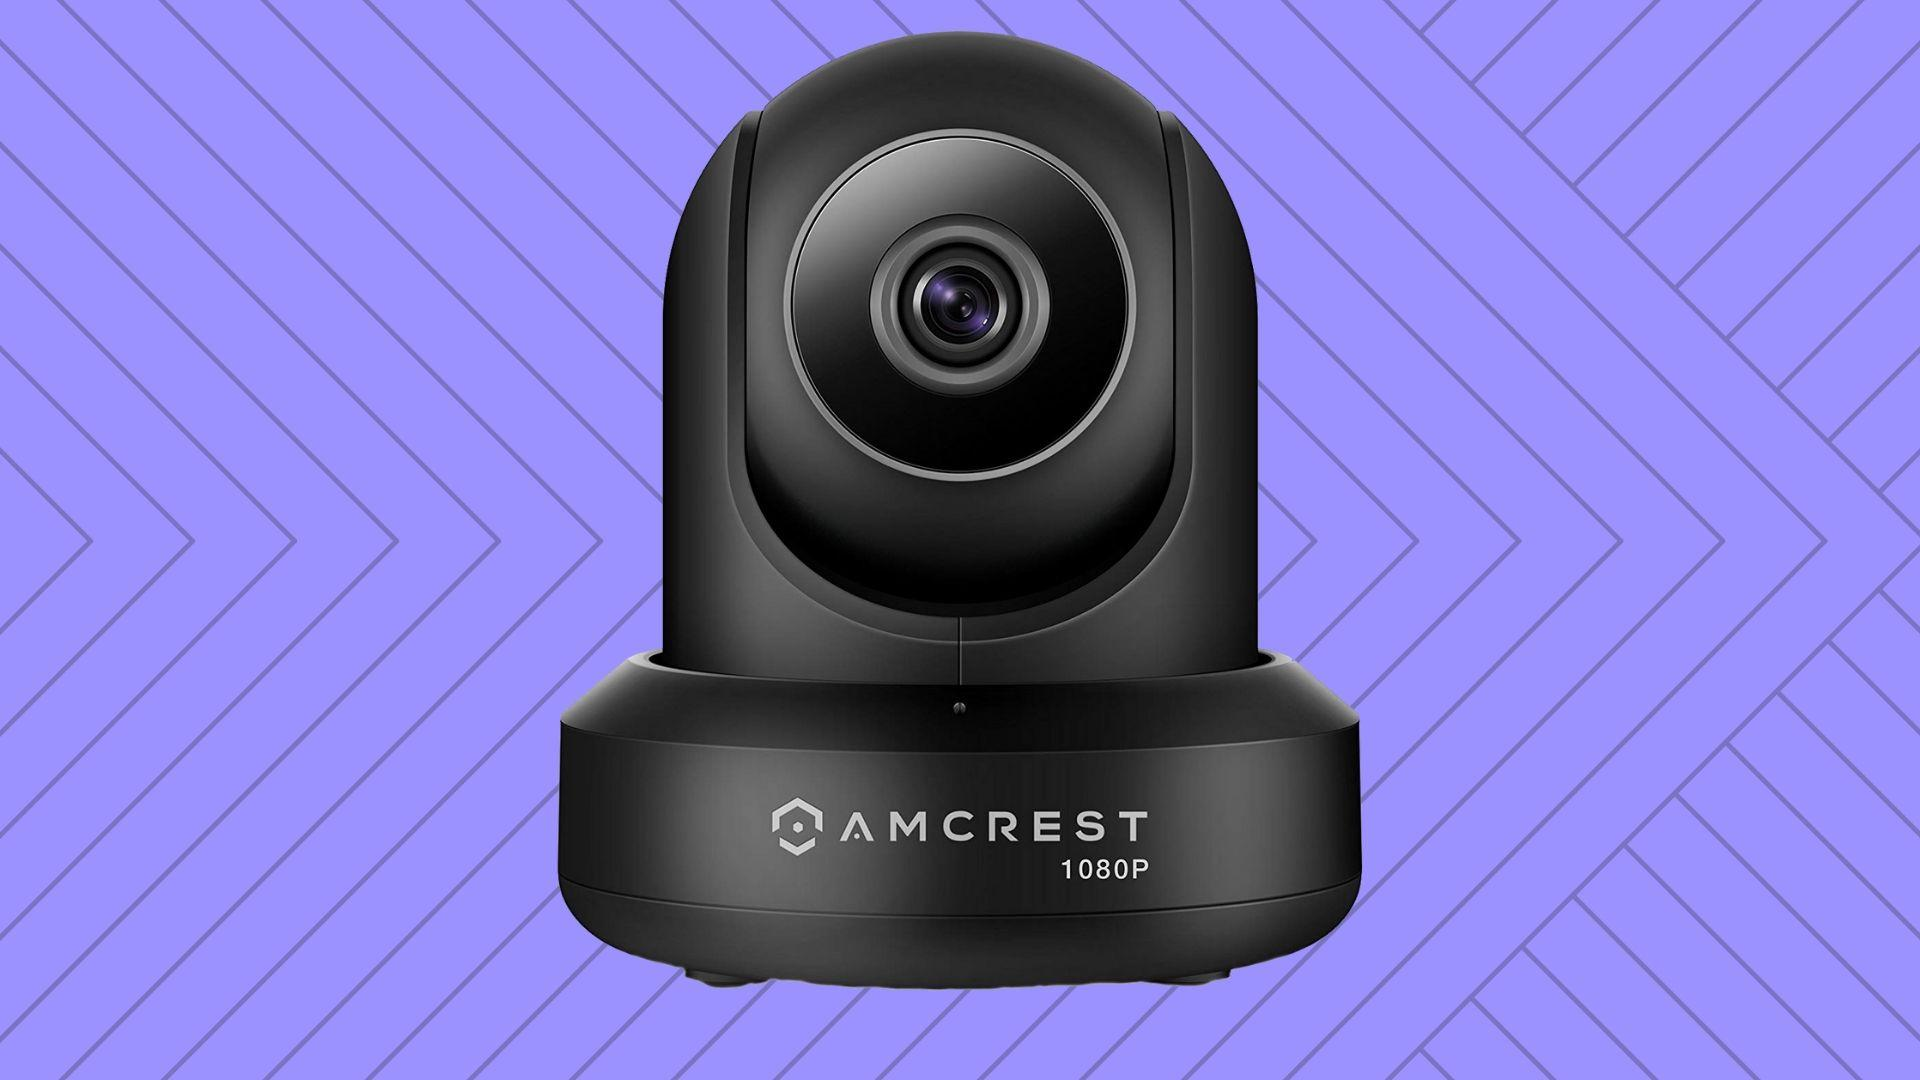 Limited time deal! This smart home security camera is on sale — now just $34